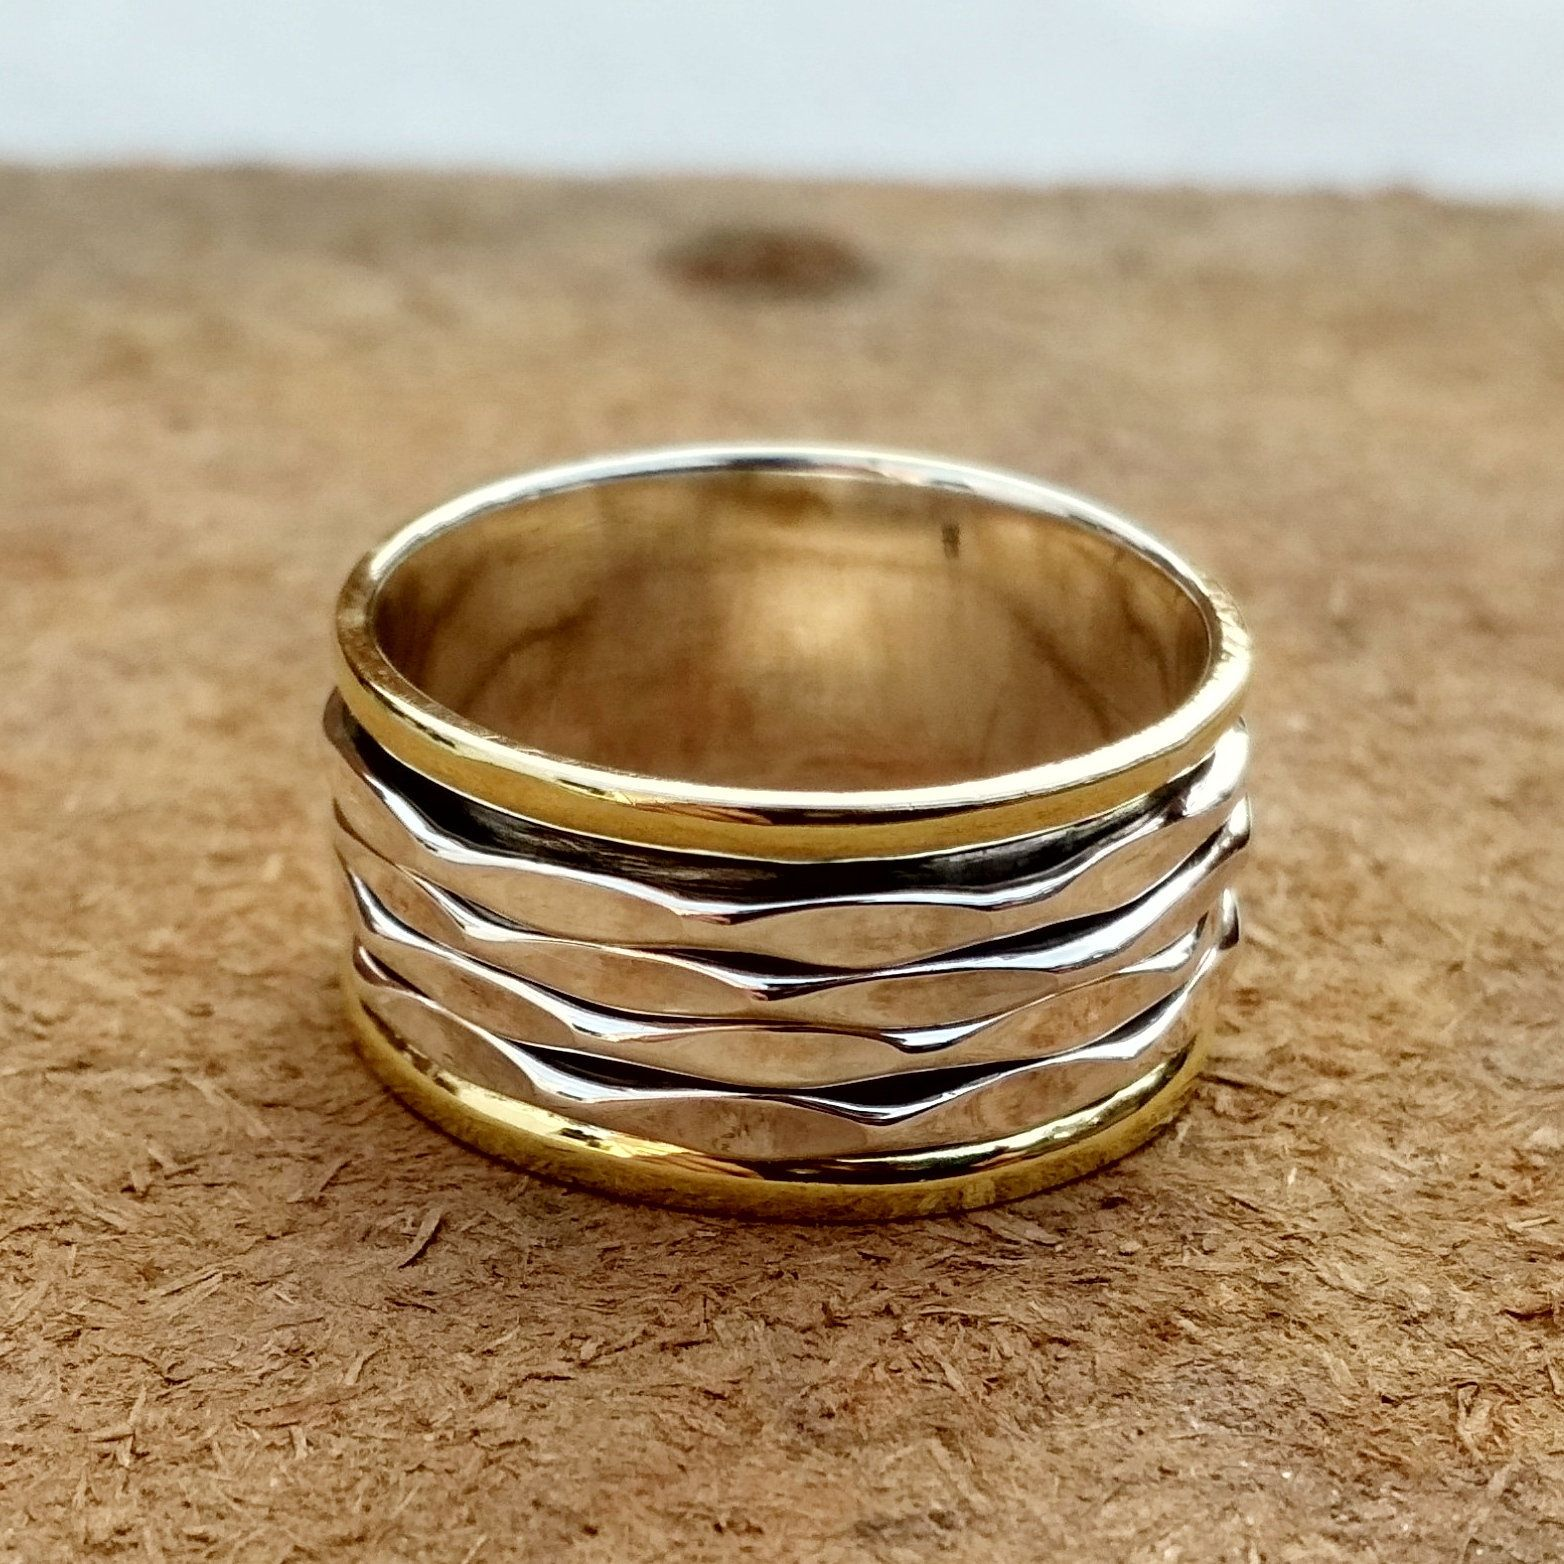 Spinner spinning Ring Two Tone Ring Spinner Ring Anxiety Ring Spinning Ring Handmade Jewelry Fidget Ring Thumb Ring Meditation Ring